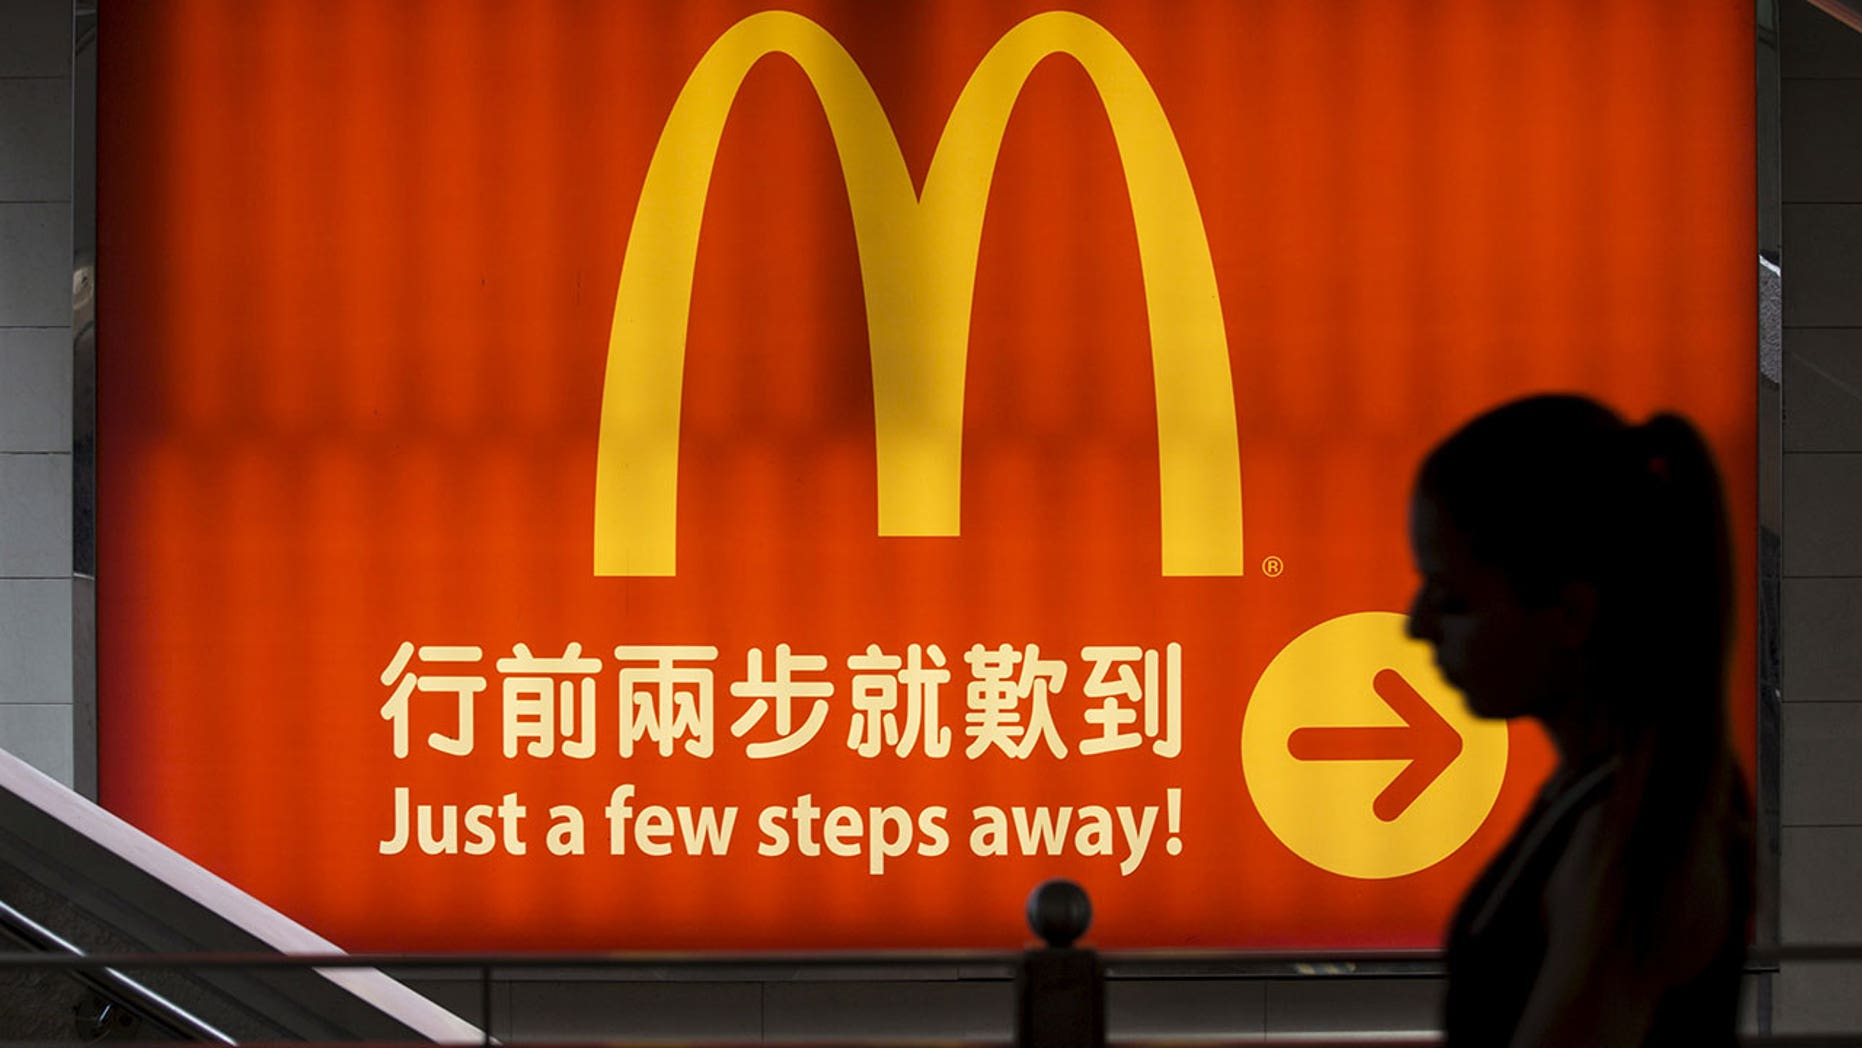 The Twitter account, which was masquerading as the official account of McDonald's Hong Kong, has been suspended.